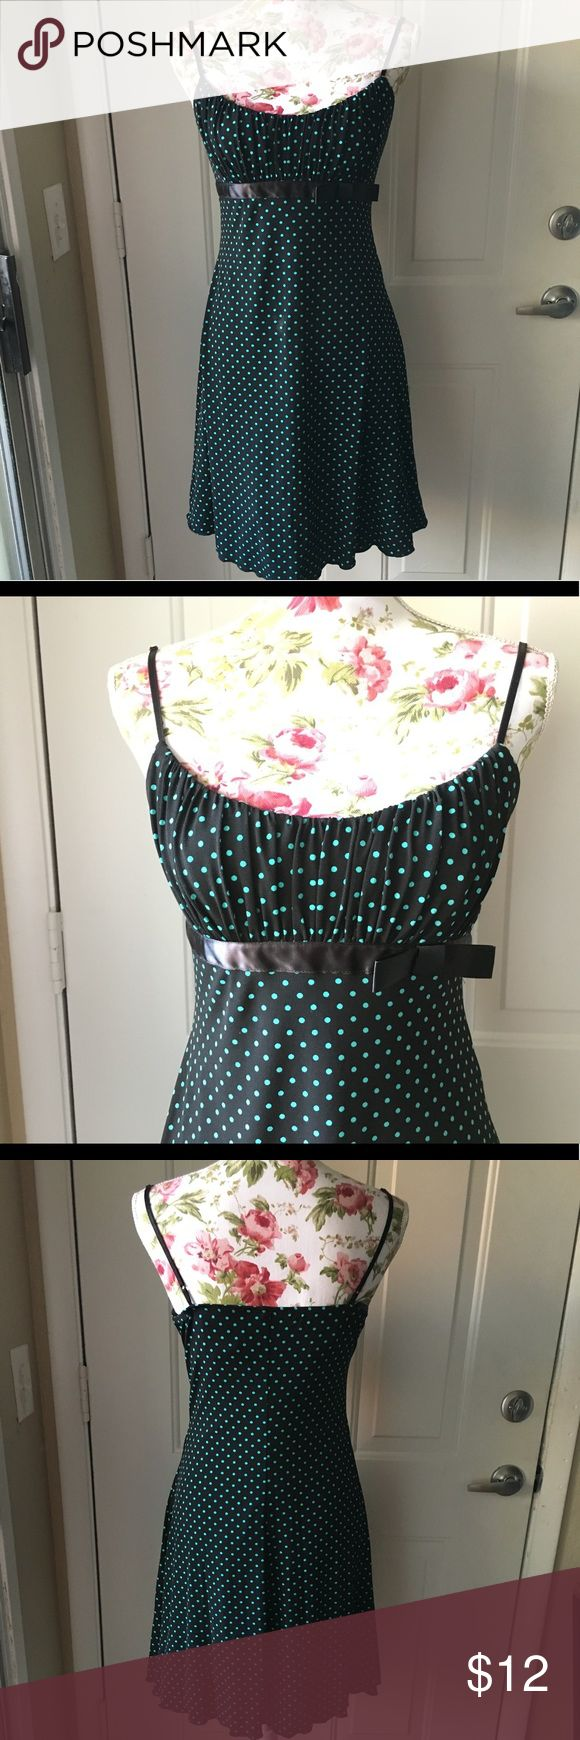 """Teal + Black Polka Dot Dress Teal and black polka dot formal dress with underbust bow and tulle underneath. Adorable and very comfy! In great condition! Tag says it's a junior's large, but fits much more like a medium. Brand is """"Love Tease."""" Selling because I never wear it and it's no longer my style Bonton Dresses"""